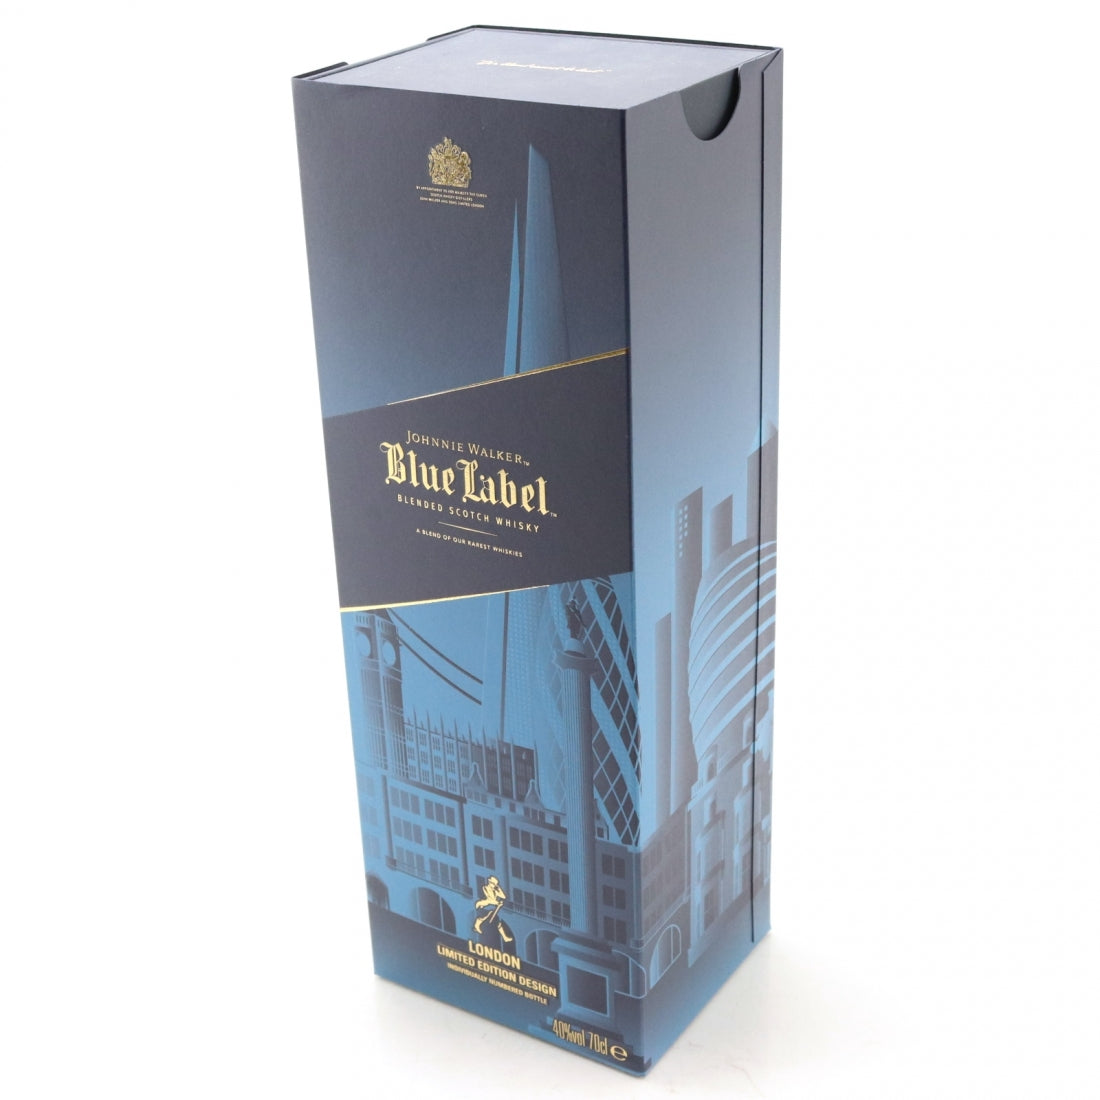 Johnnie Walker Blue Label London Limited Edition